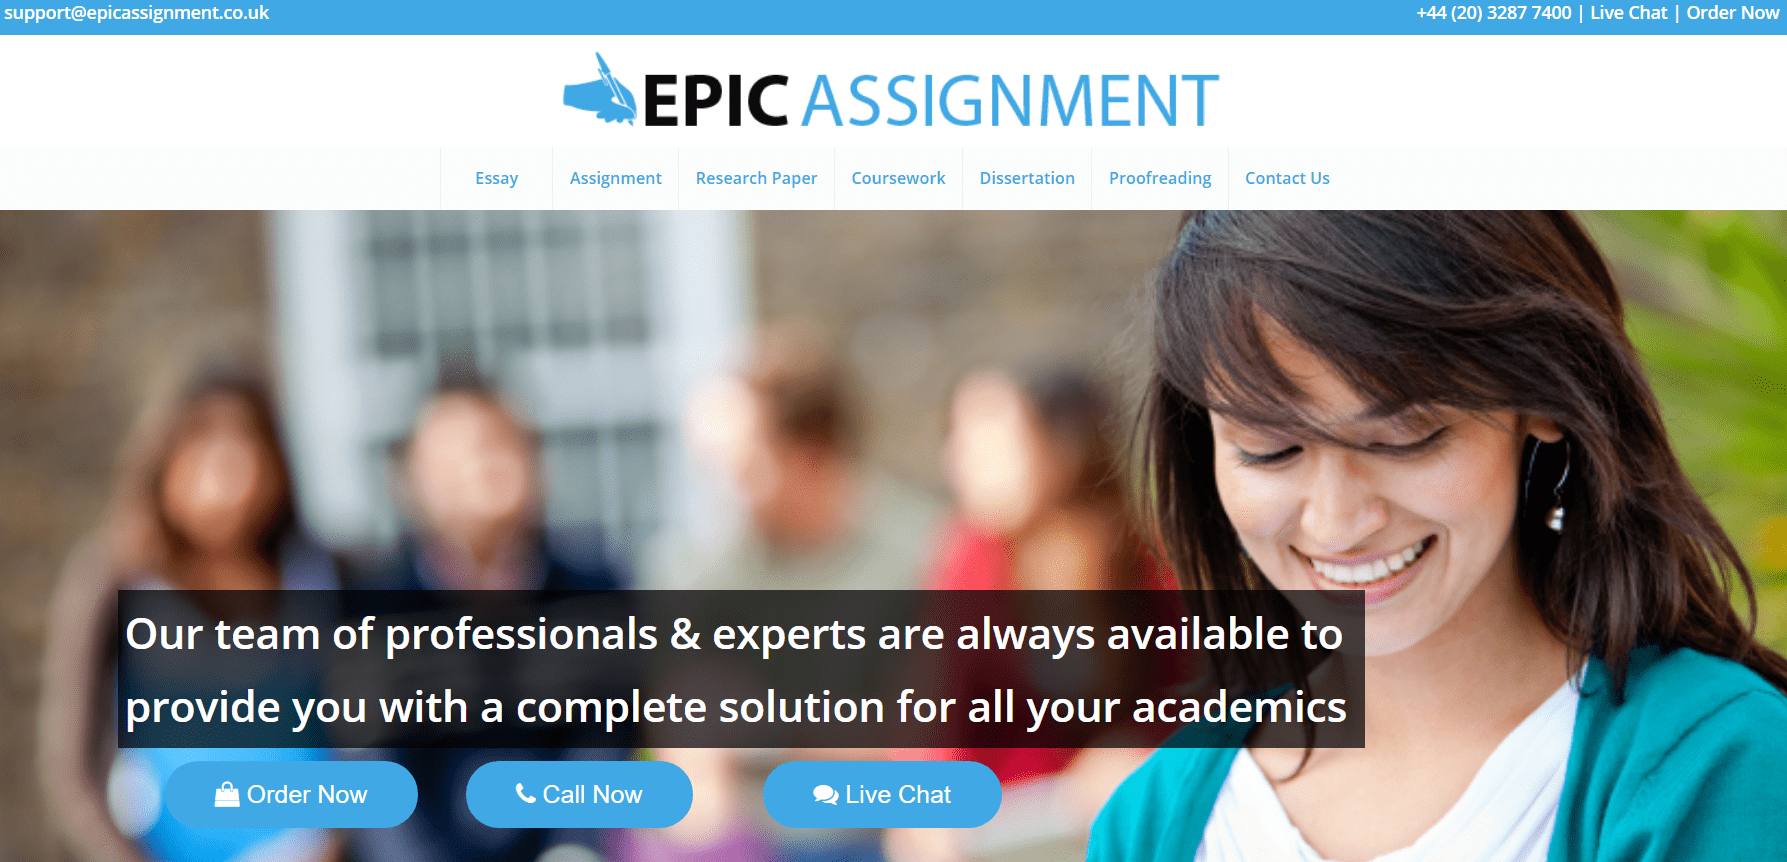 epicassignment.co.uk